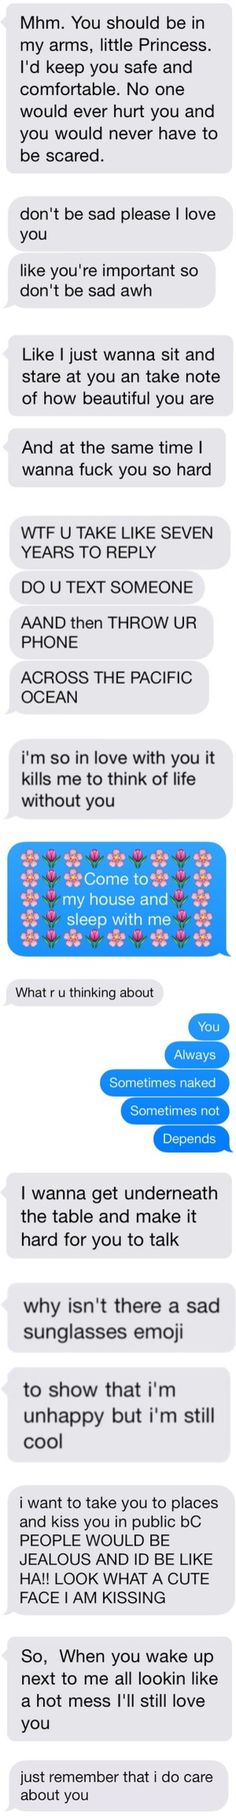 """""""Texts"""" by janettetang ❤ liked on Polyvore"""